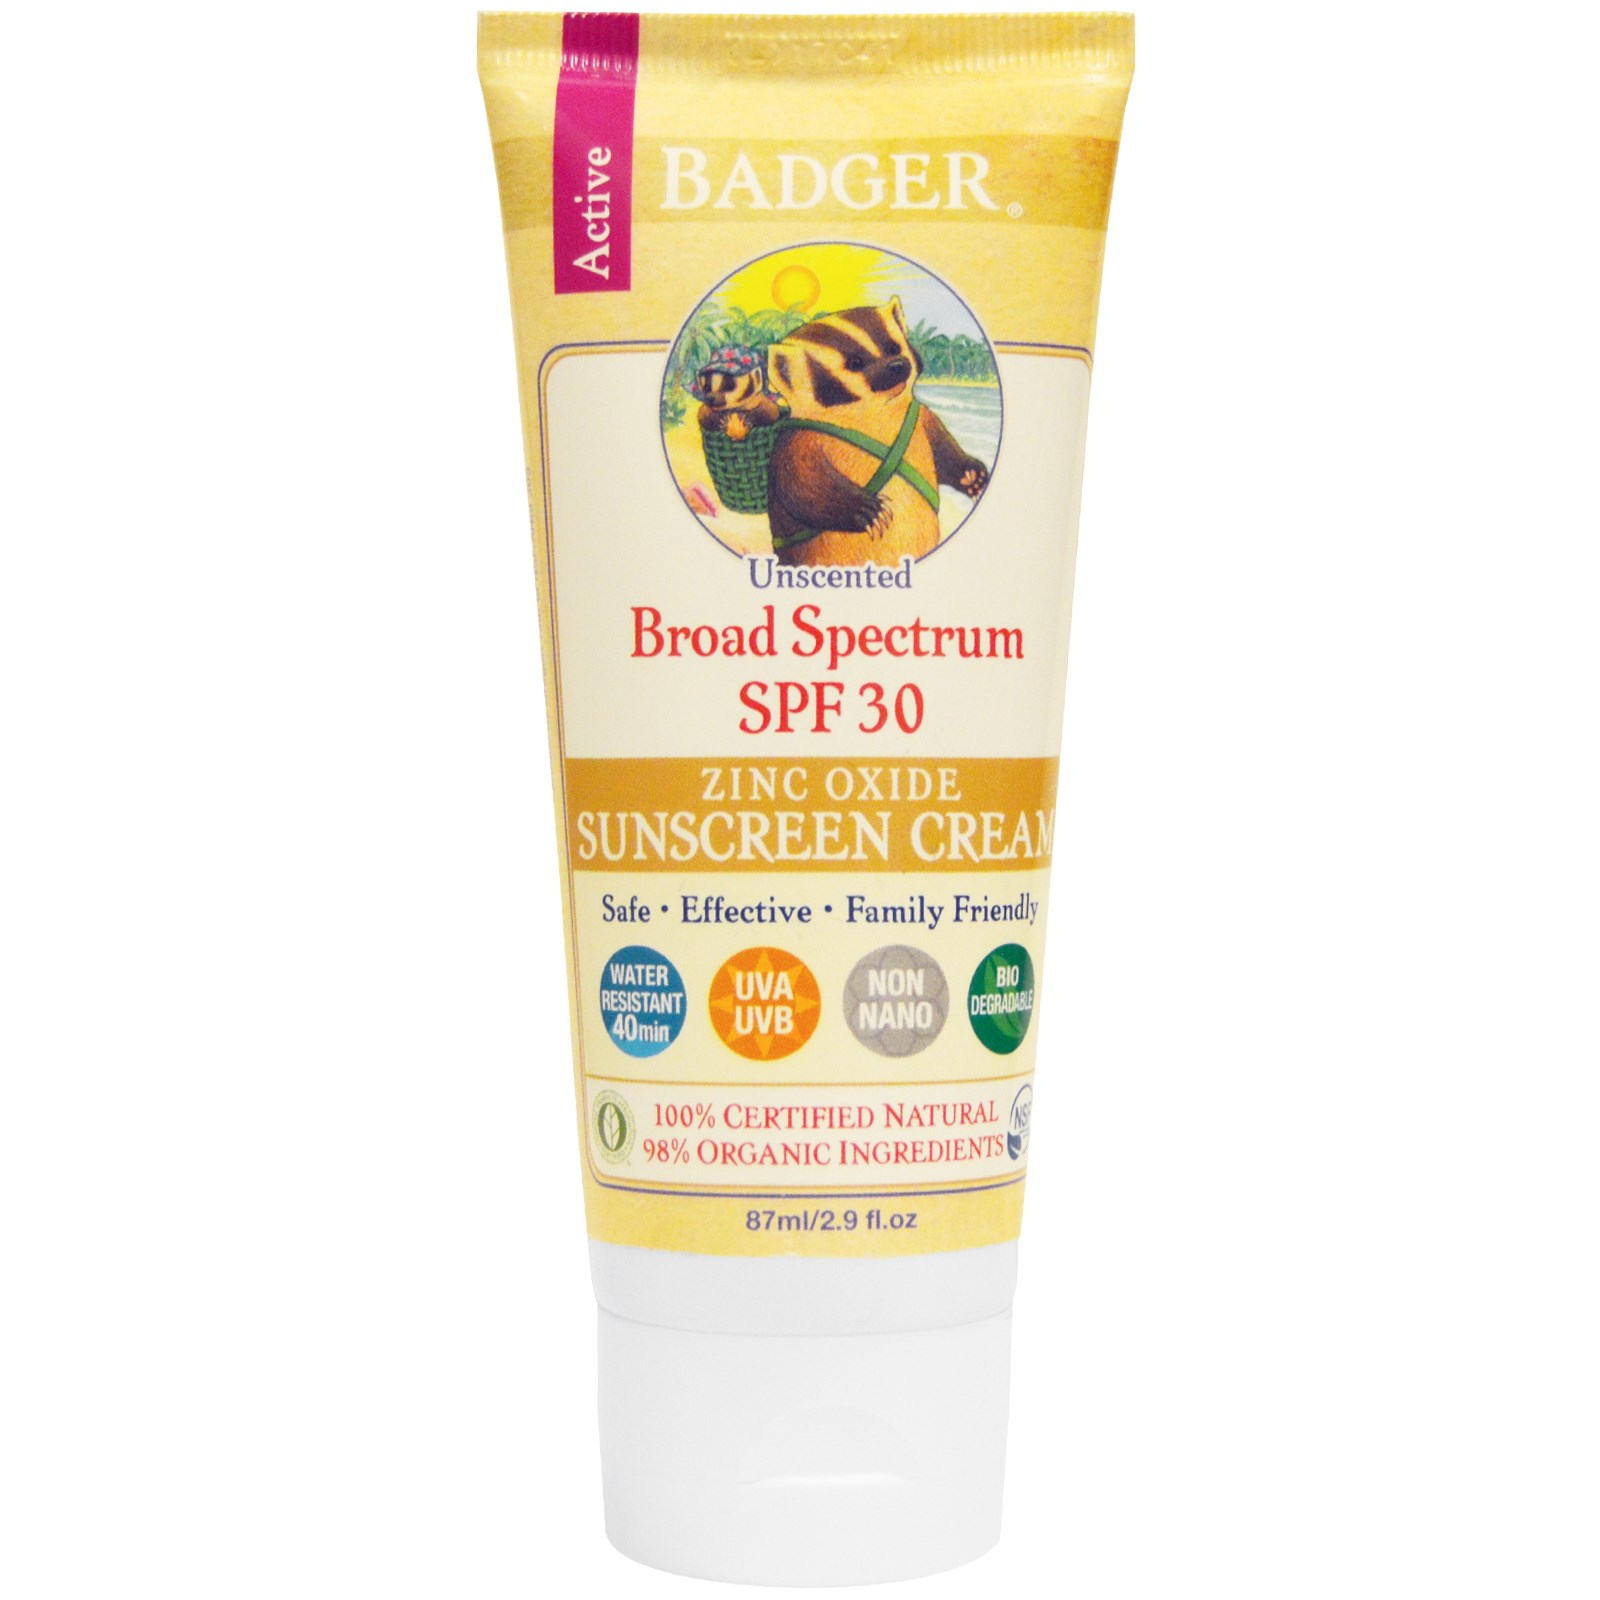 Badger Sunscreen Cream, Unscented, SPF 30